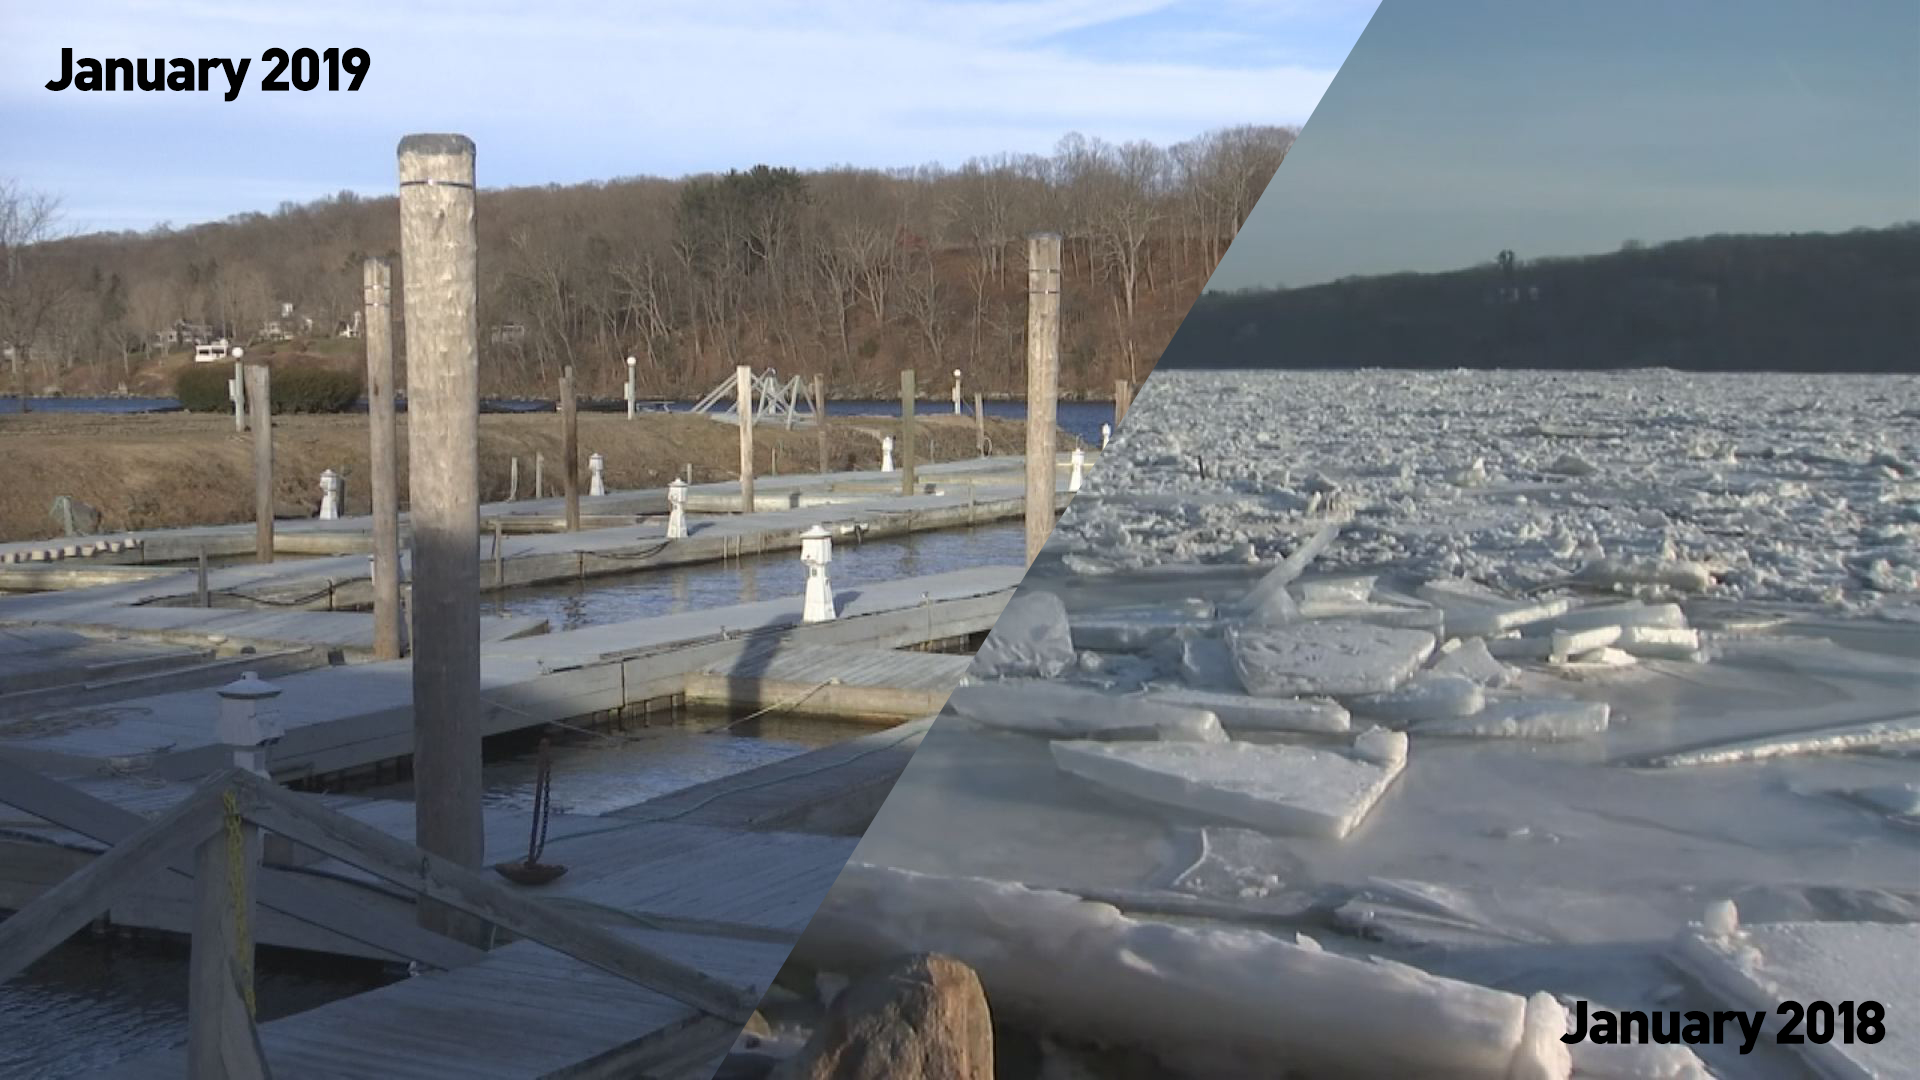 One Year Later: Ice Jam Aftermath